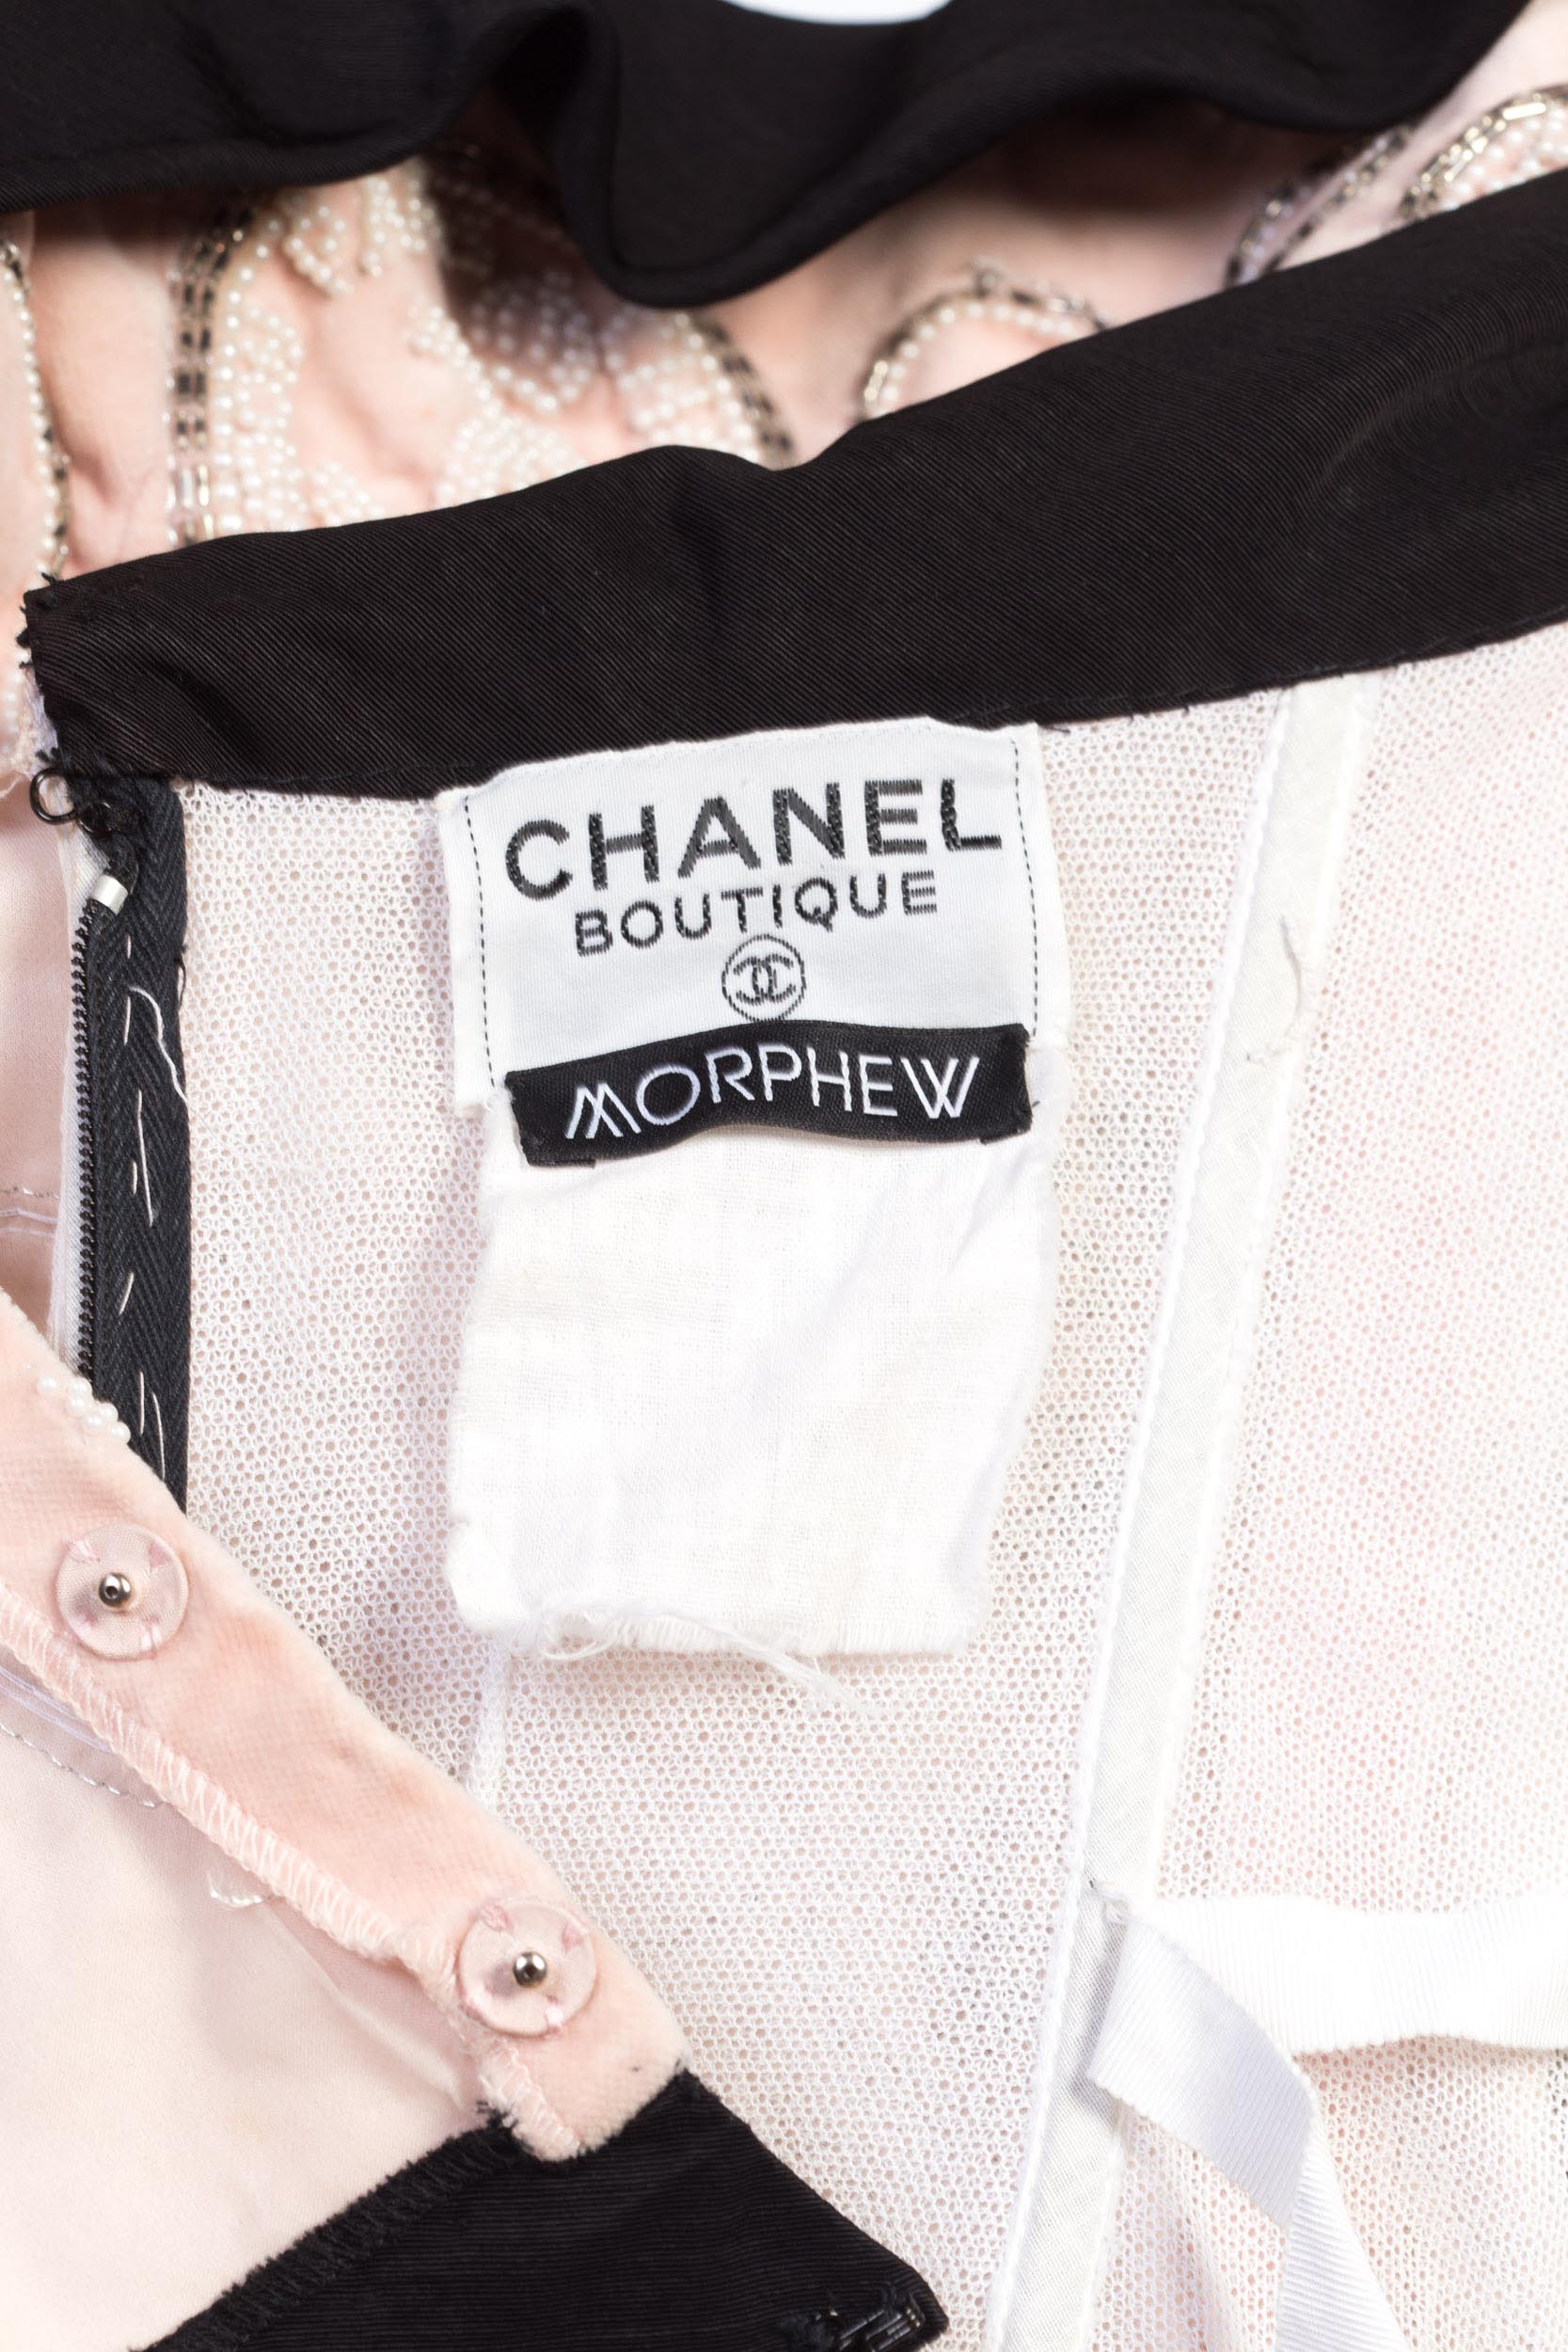 1980'S CHANEL Baby Pink & Black Silk Velvet Cocktail Dress Beaded With CC Logo In Pearls